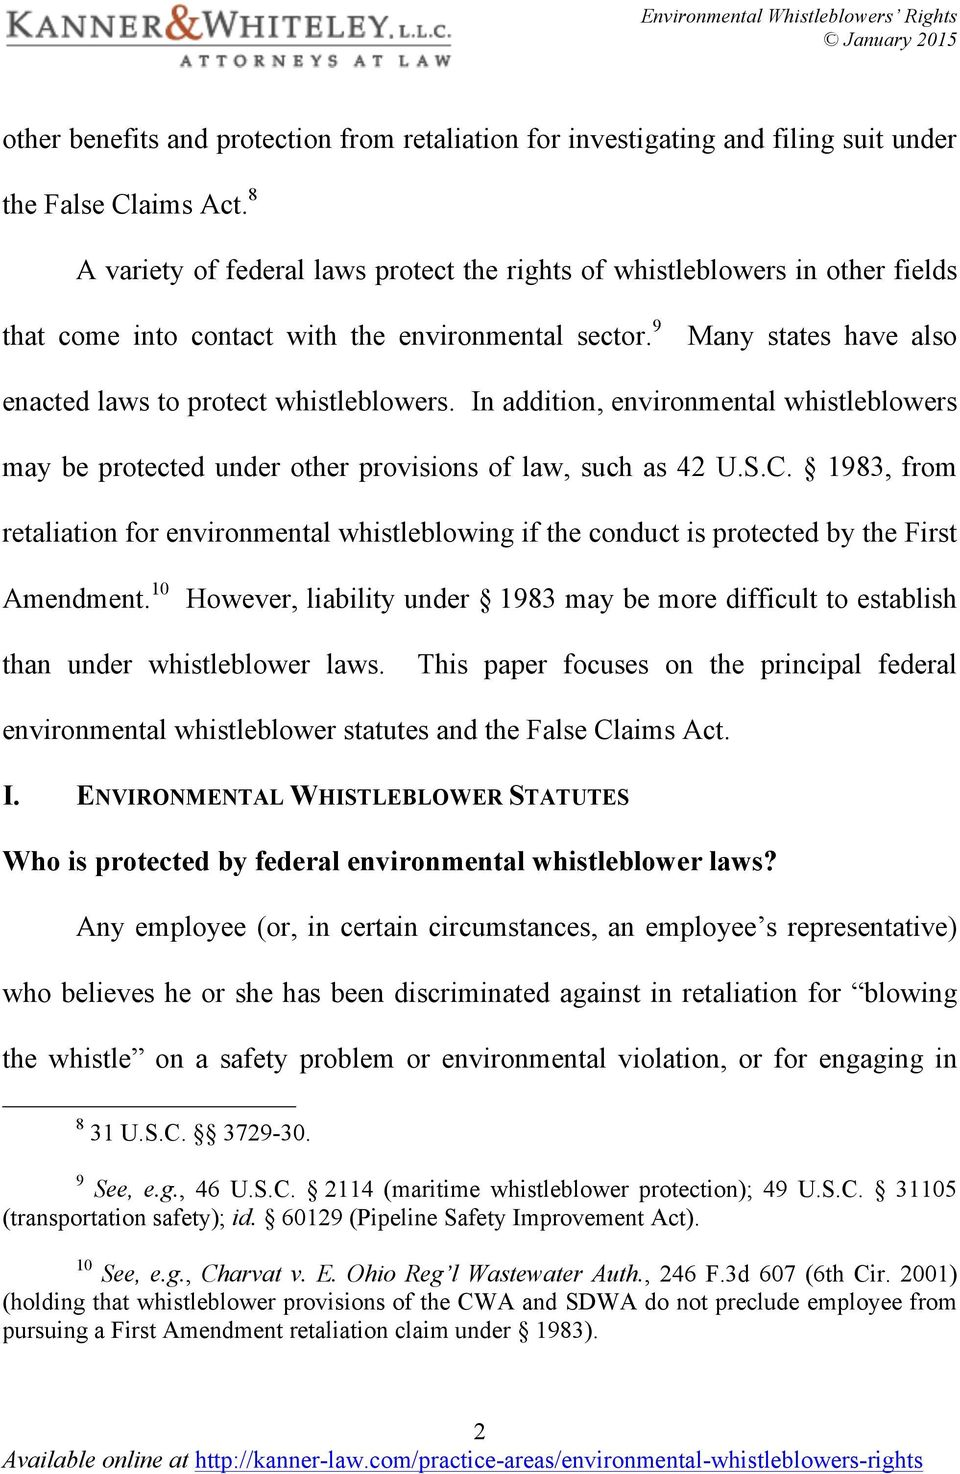 In addition, environmental whistleblowers may be protected under other provisions of law, such as 42 U.S.C.